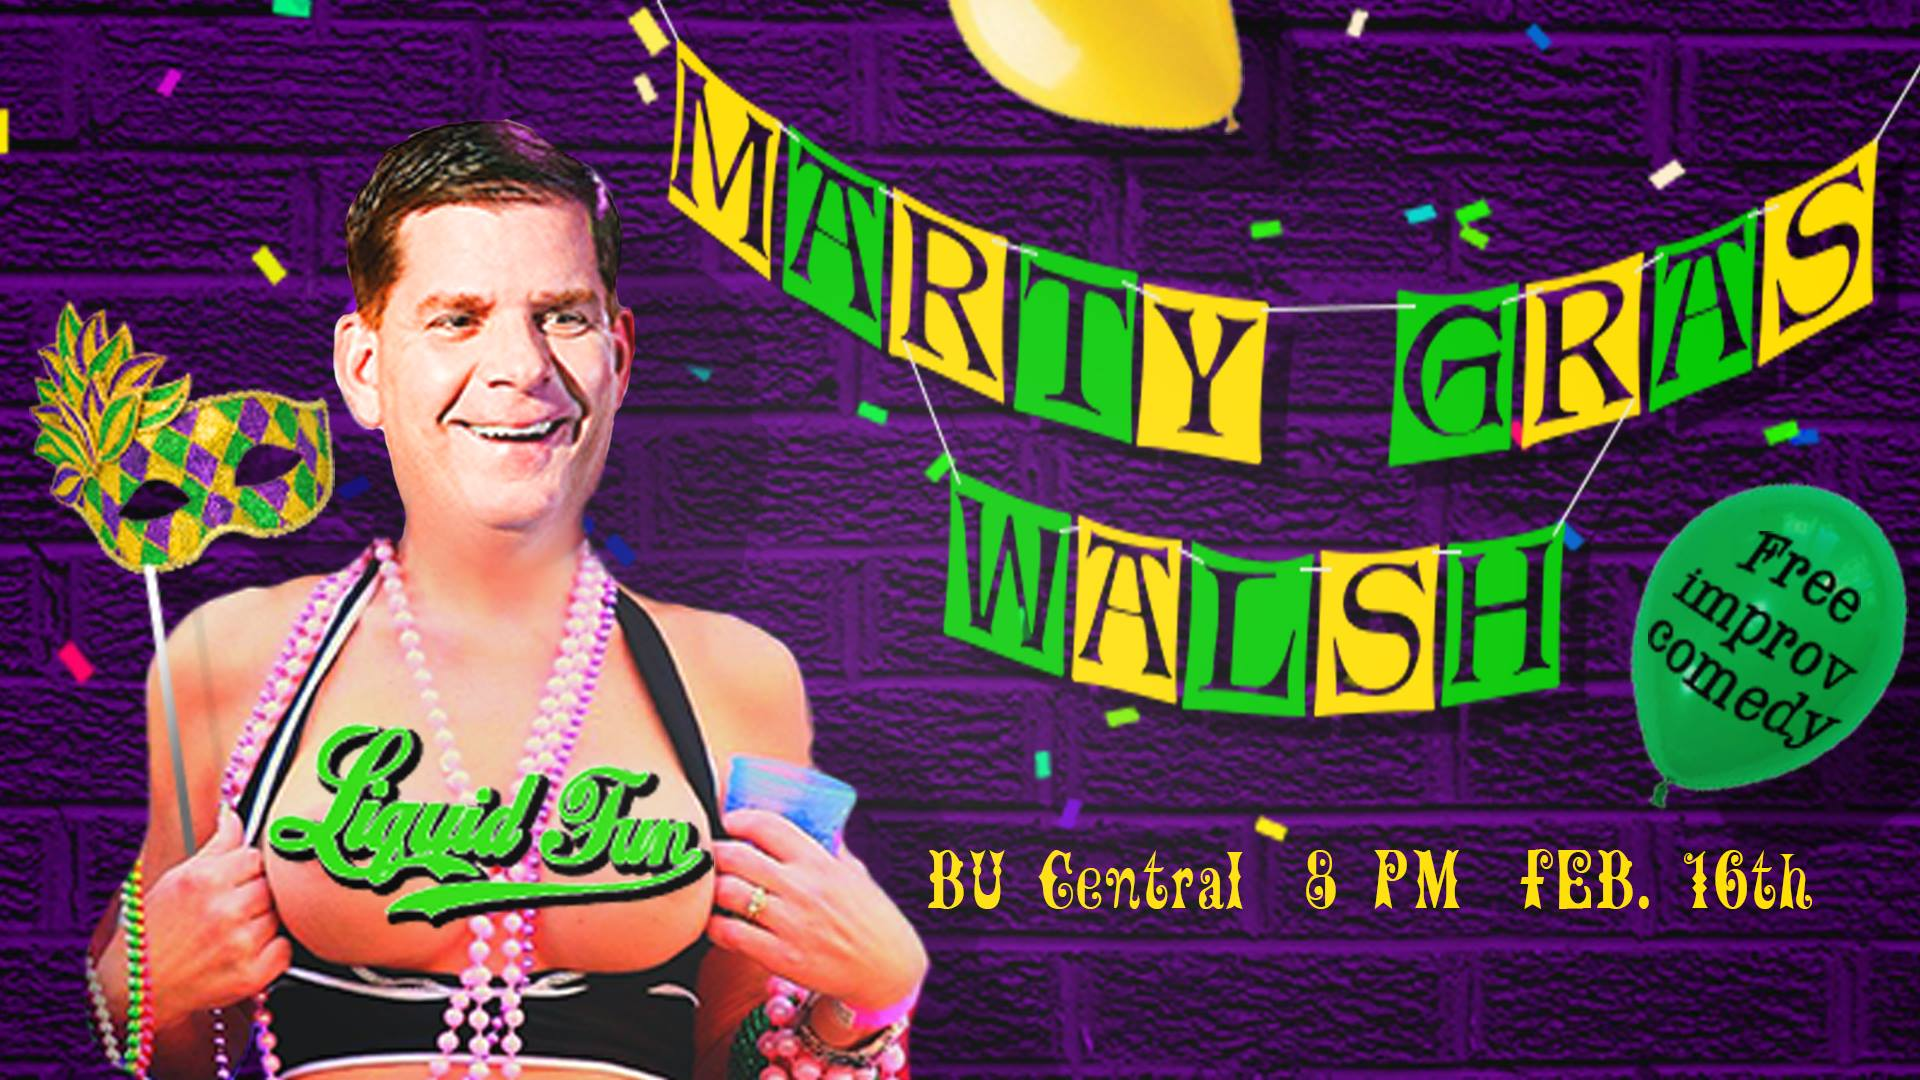 Marty Gras Walsh